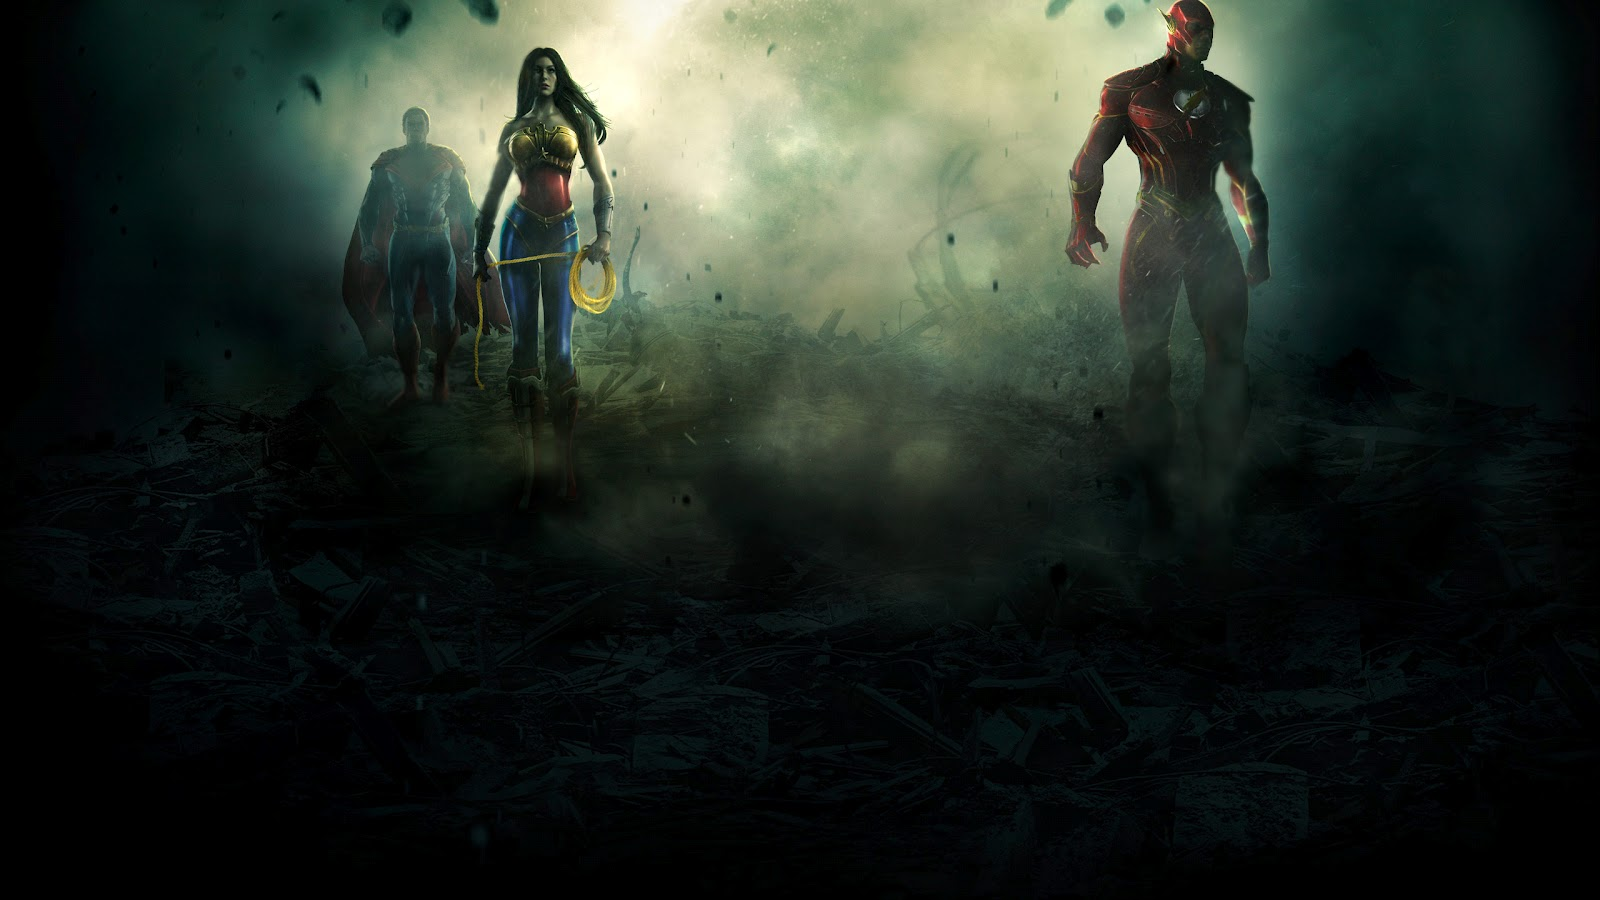 Hd wallpaper justice league - Injustice Gods Among Us Superman Hd Wallpaper Background 2560x1440px